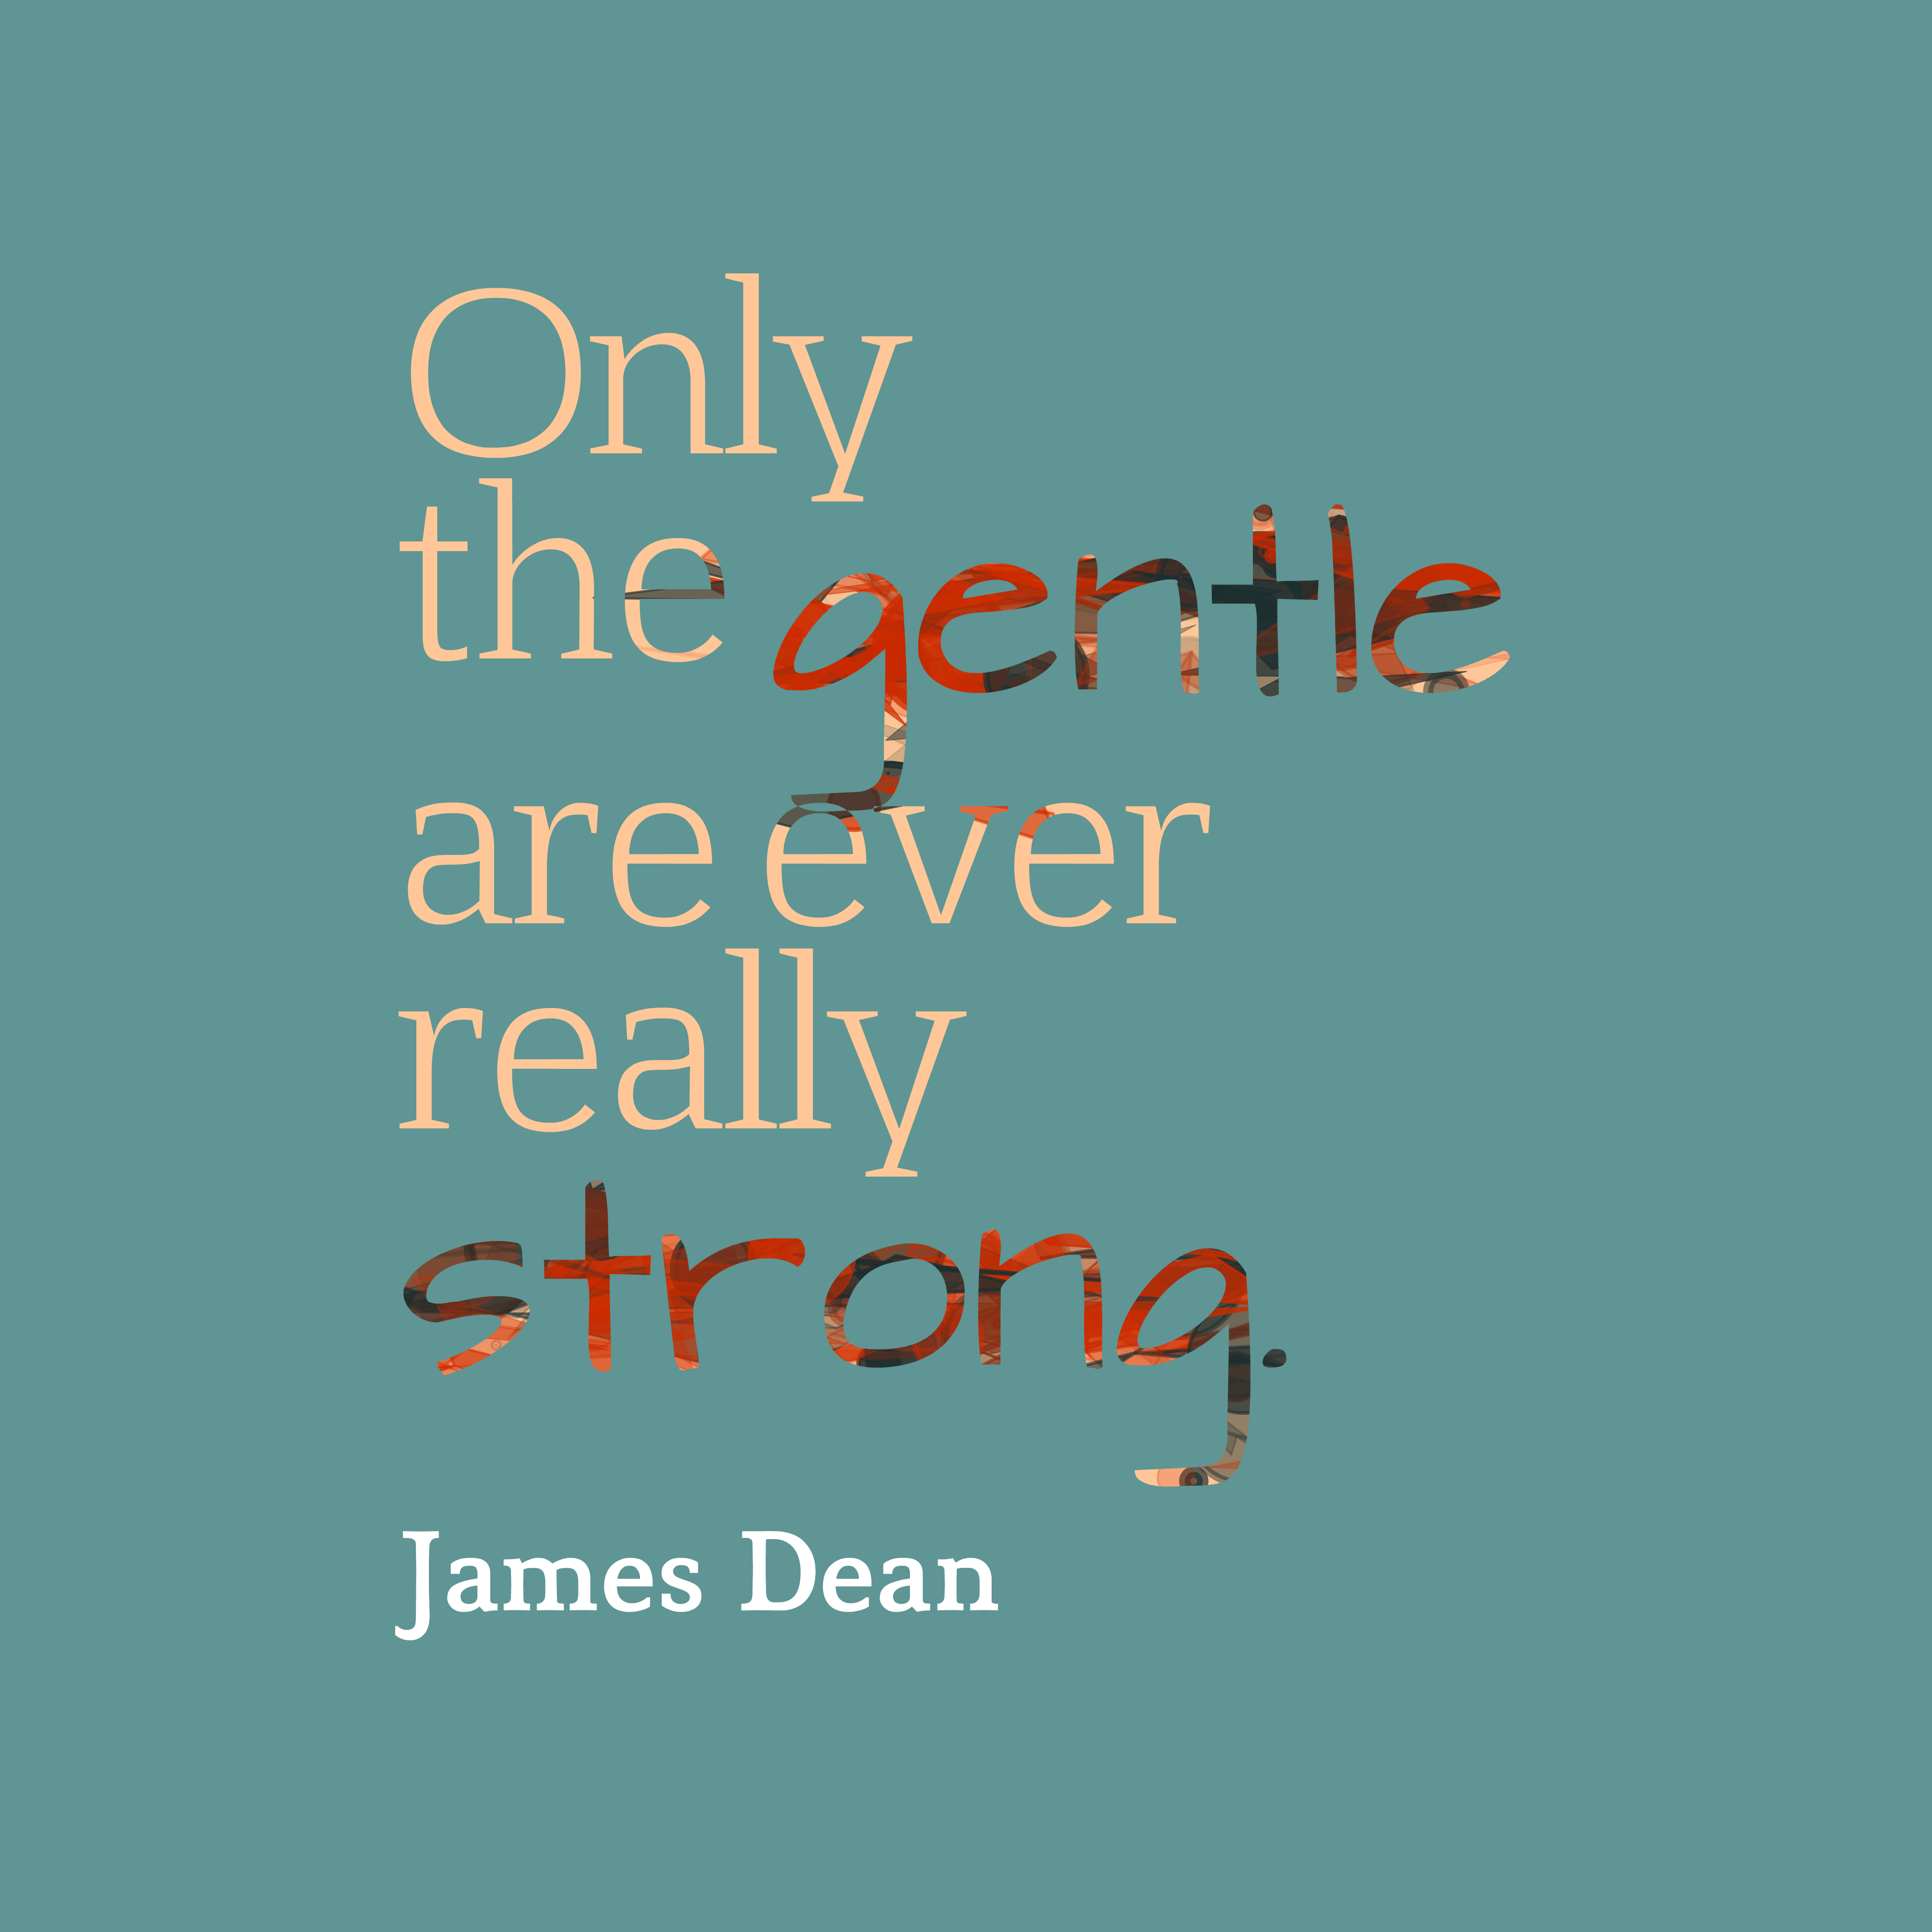 Quotes Design 35 Inspirational Quotes About Strength  Art And Design